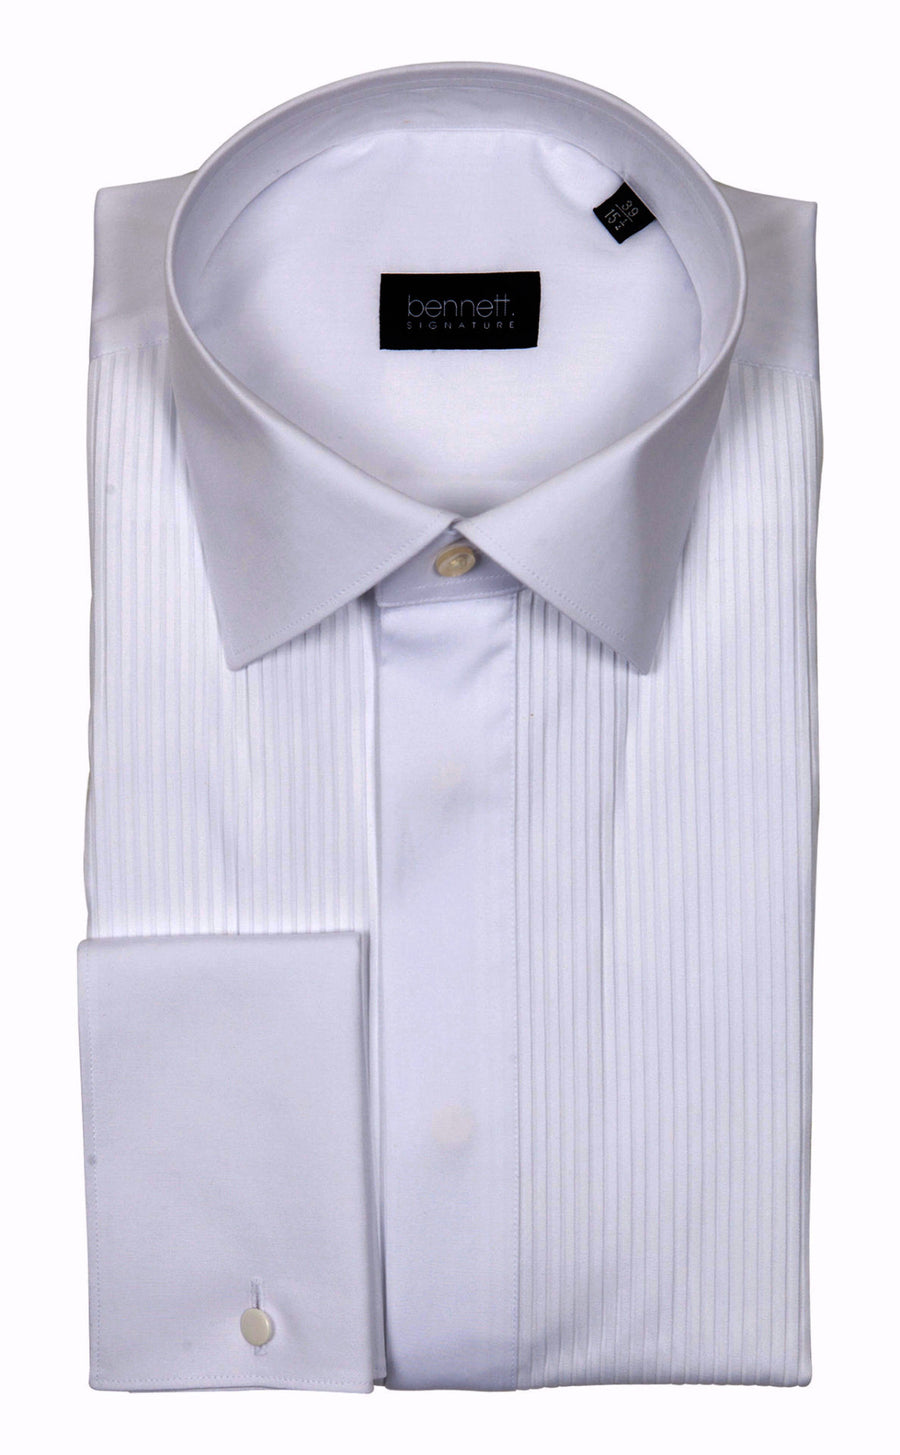 Bennett Signature Dinner Shirt Regular Collar in White - Ron Bennett Menswear